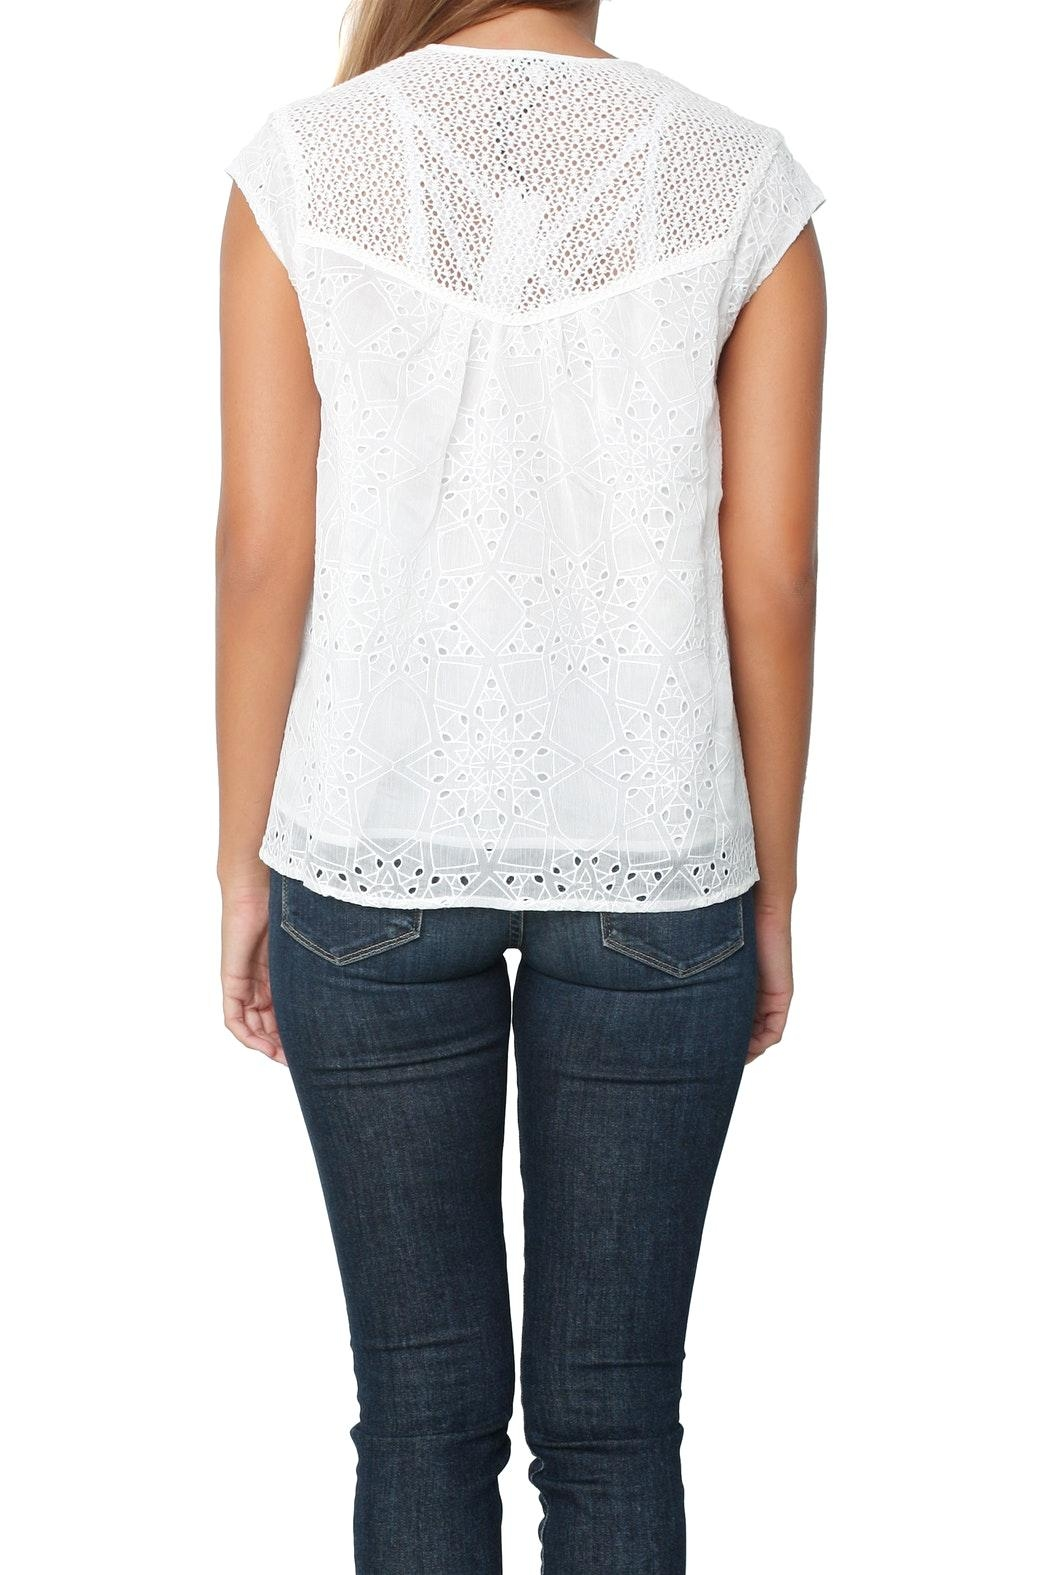 Heartloom Imogen Eyelet Top - Back Cropped Image